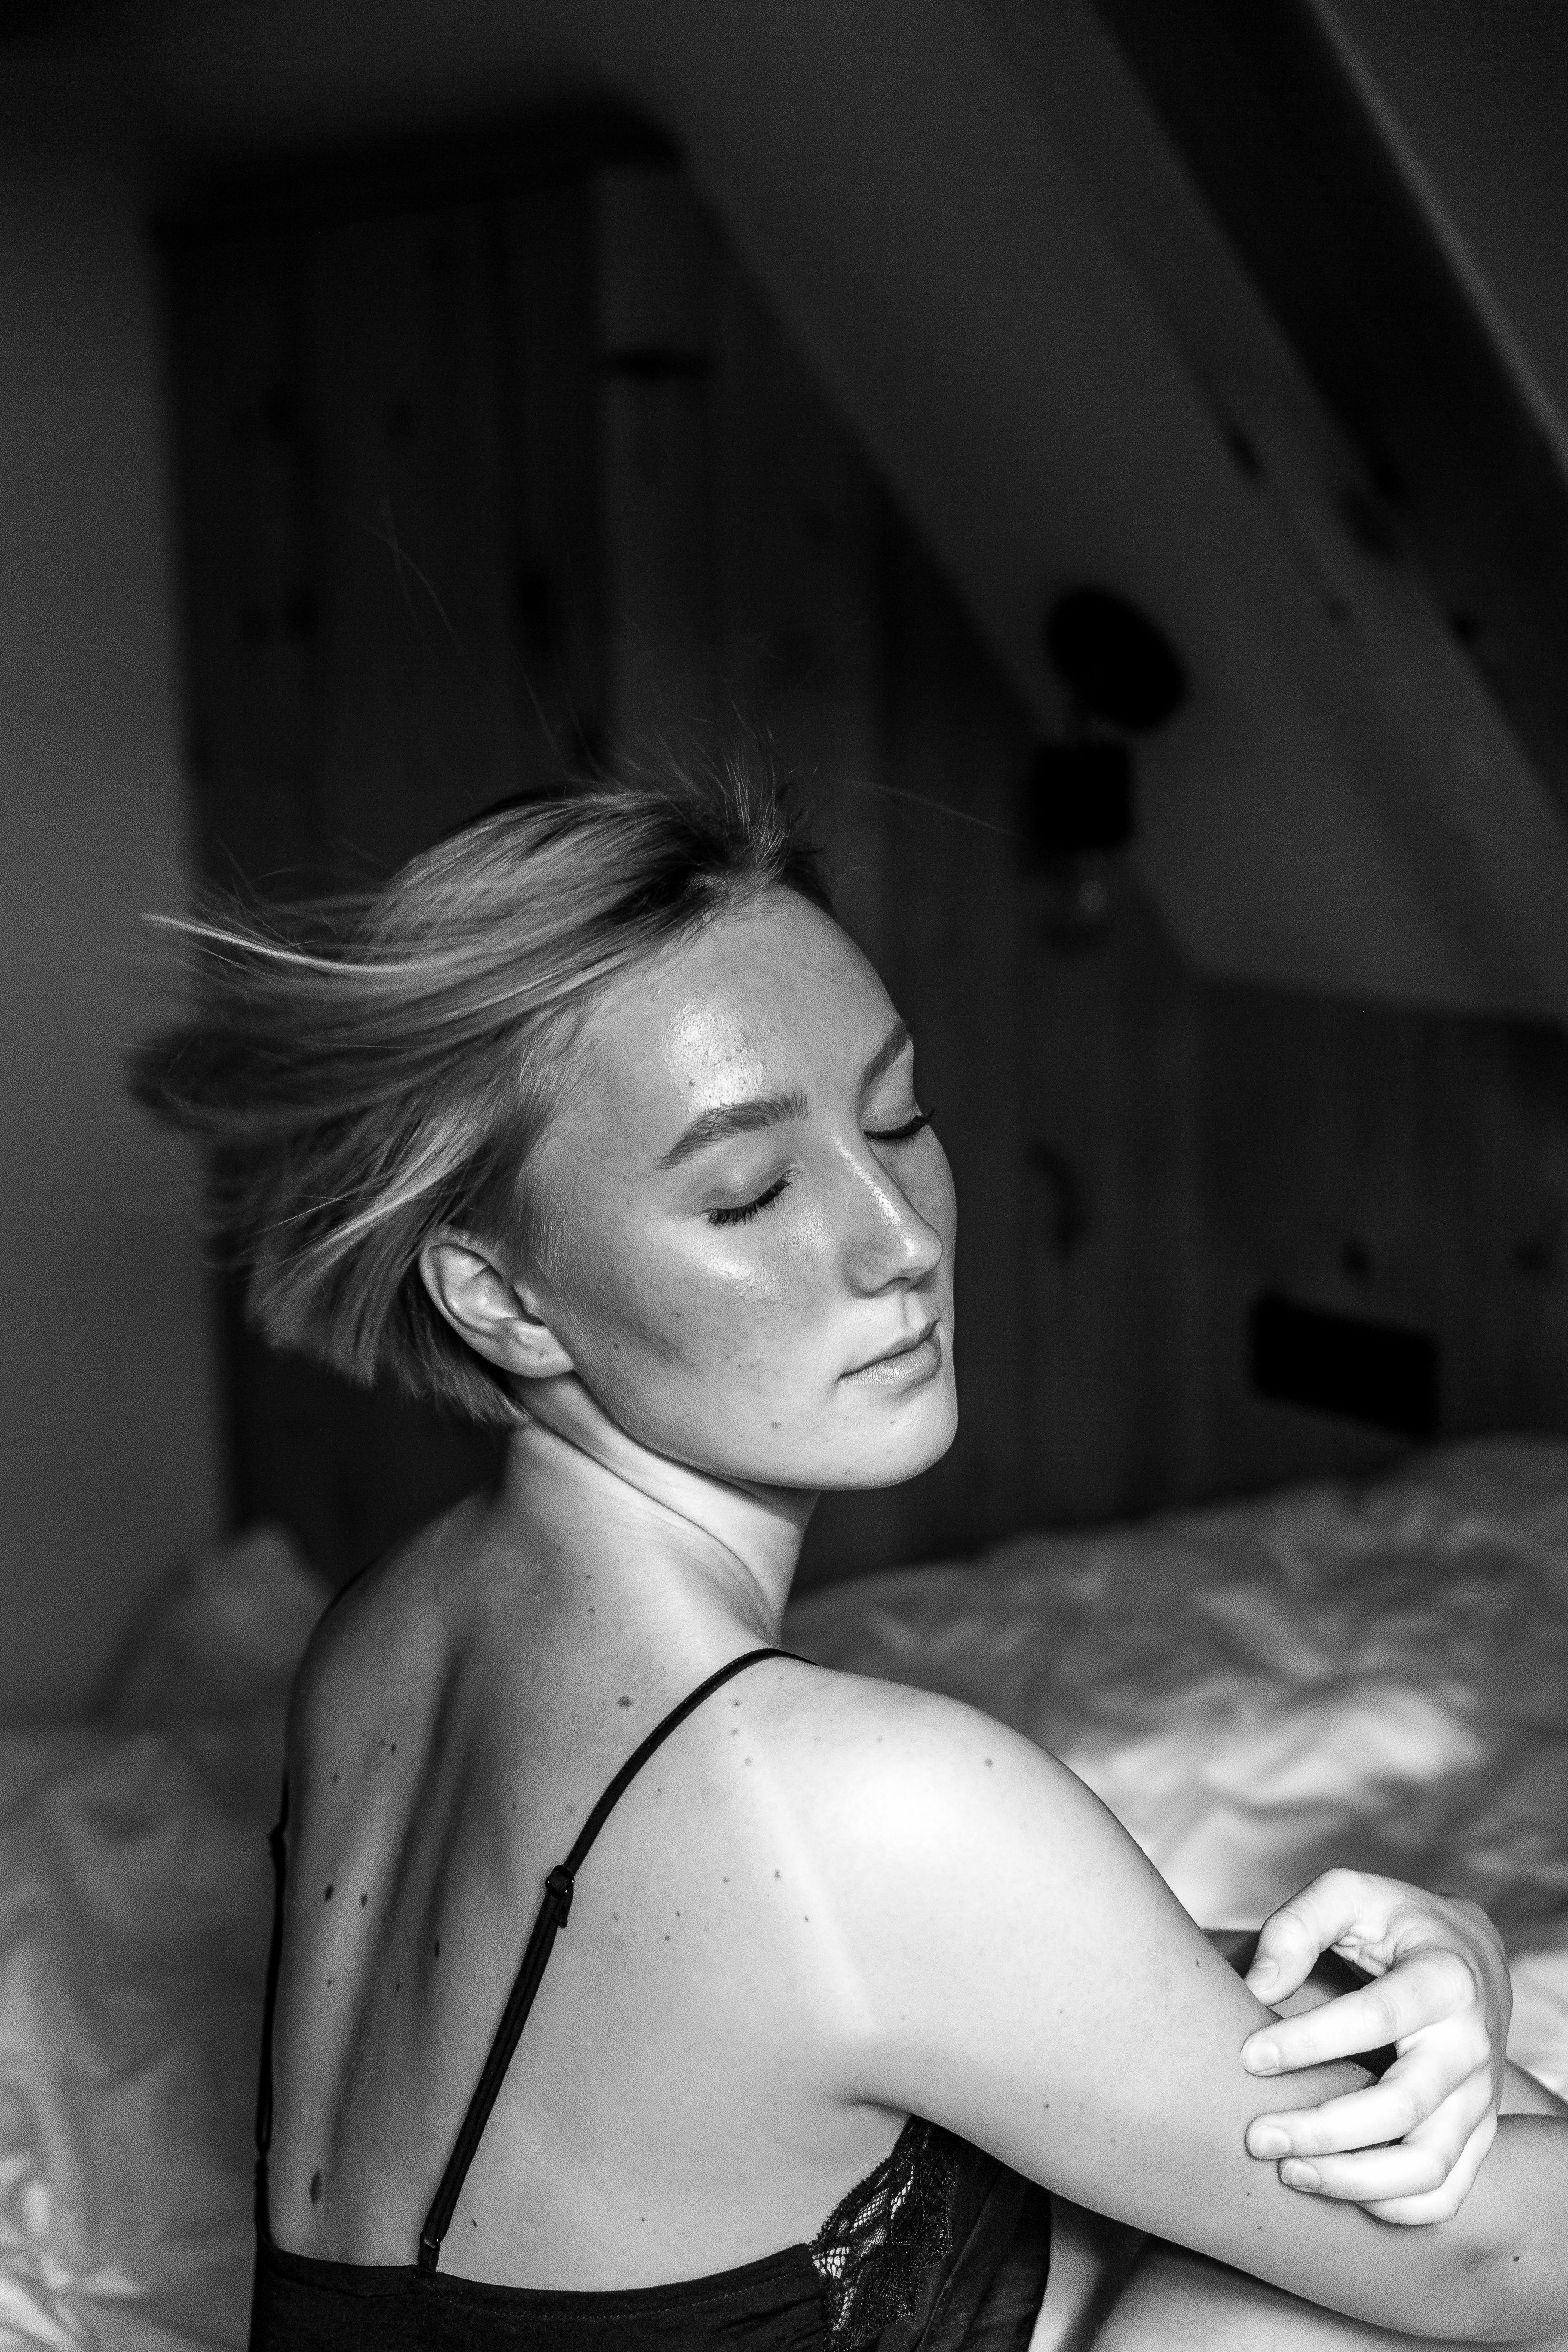 151018 Intimate portrait Mathilde-8